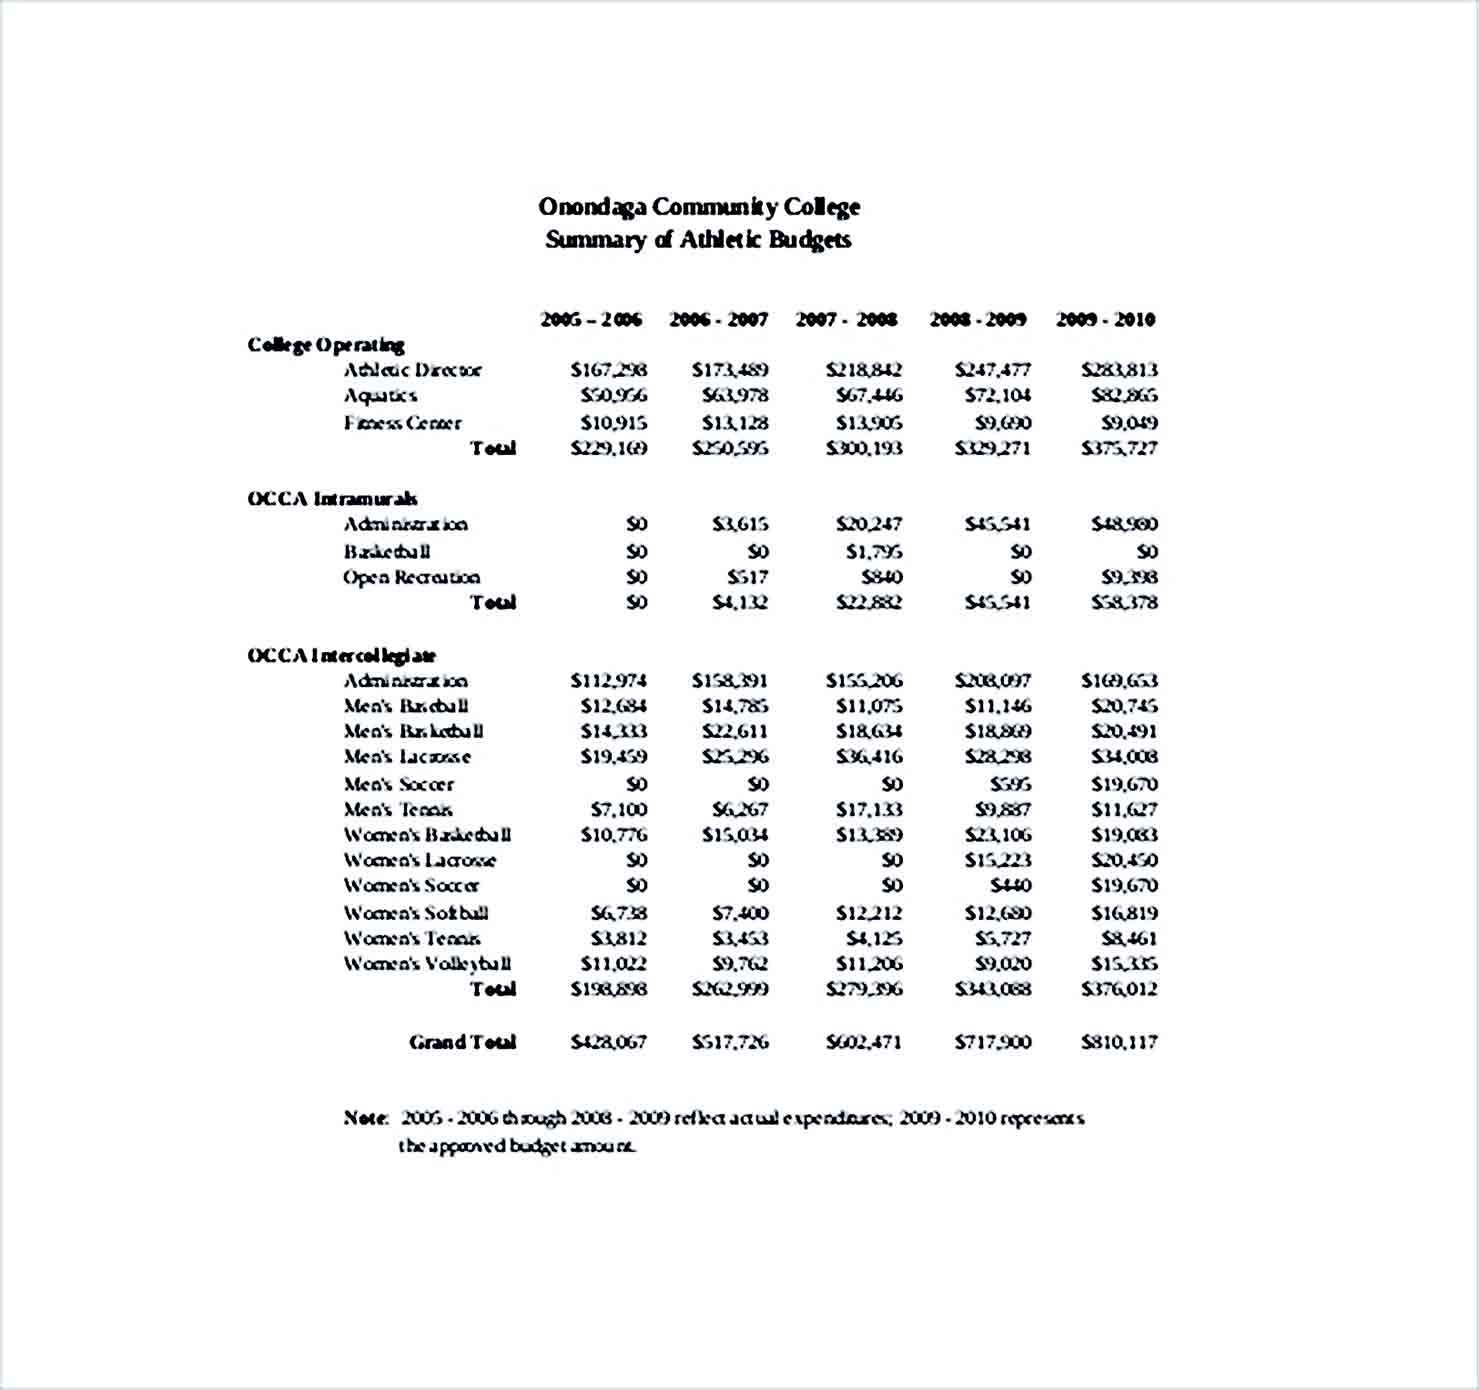 Sample college athletic budget